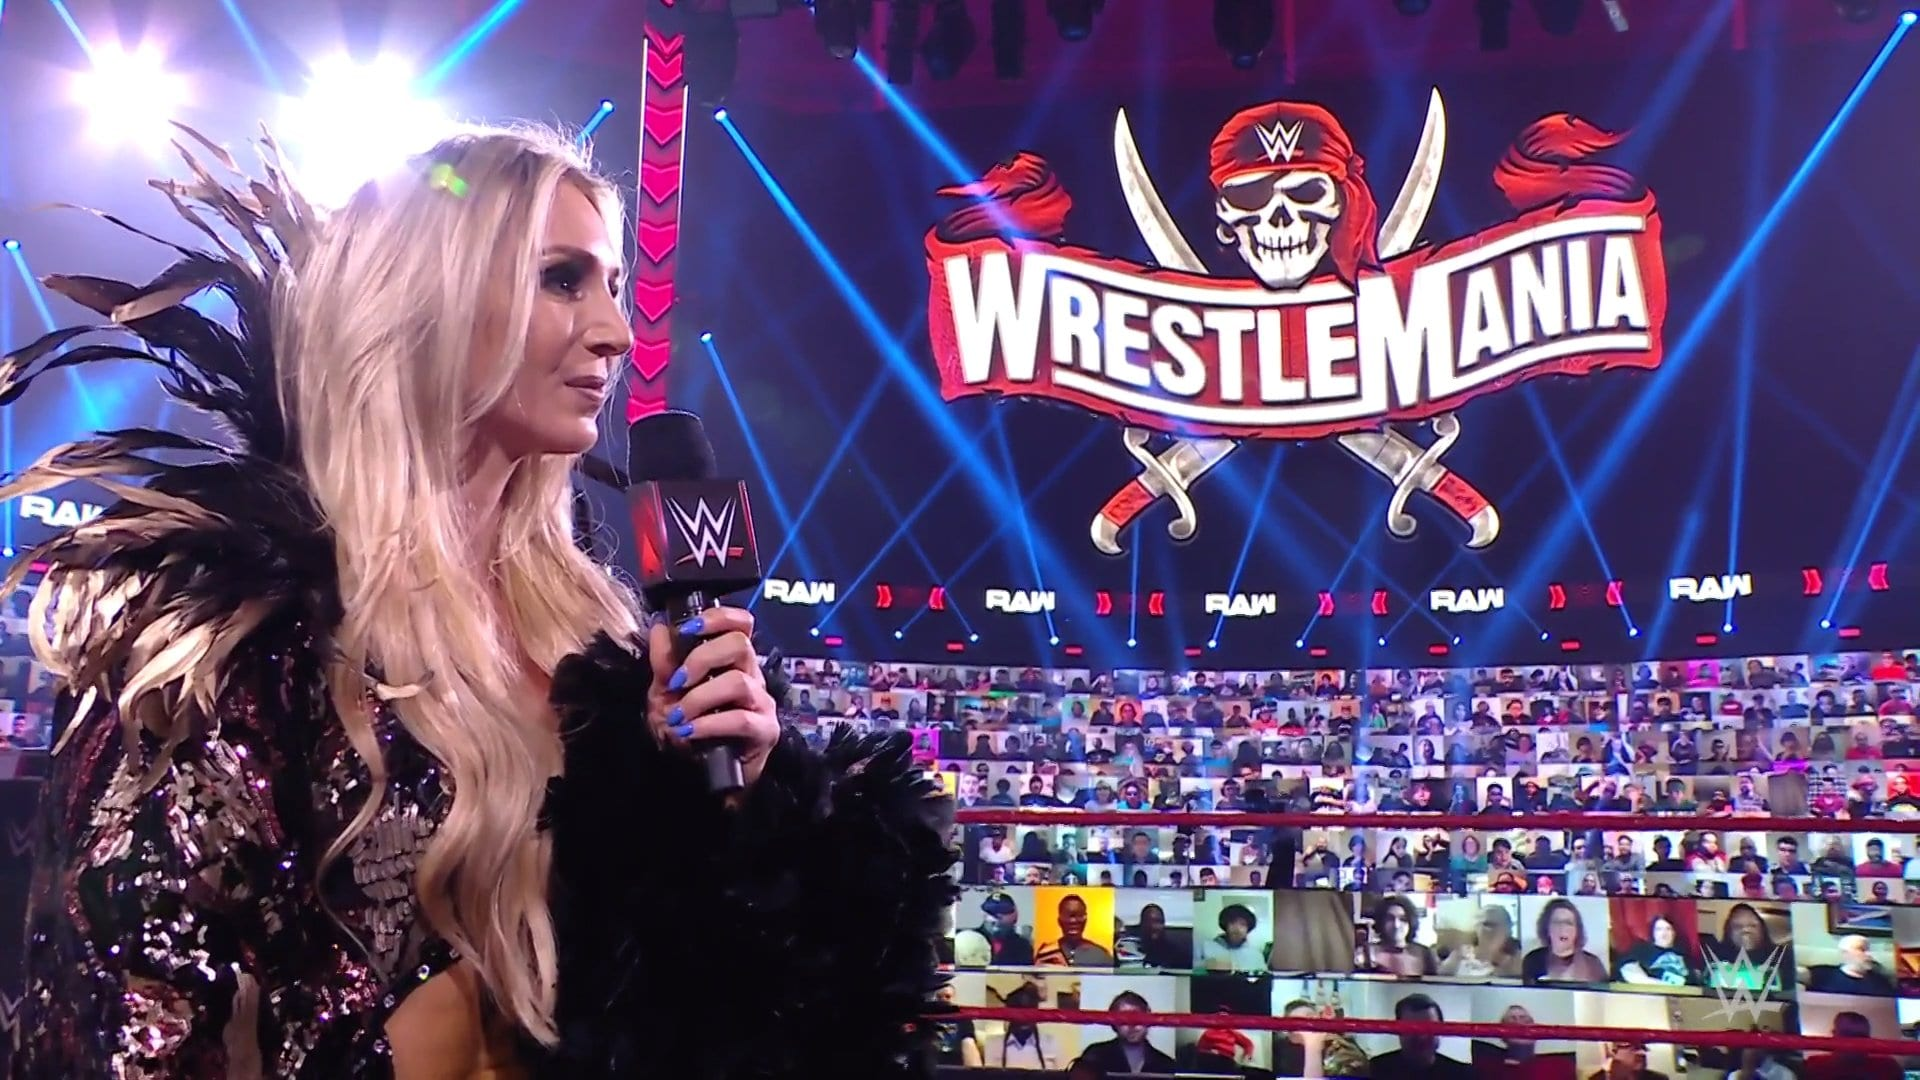 Charlotte Flair Missing Wrestlemania 37 A Huge Loss, Says WWE Official 2